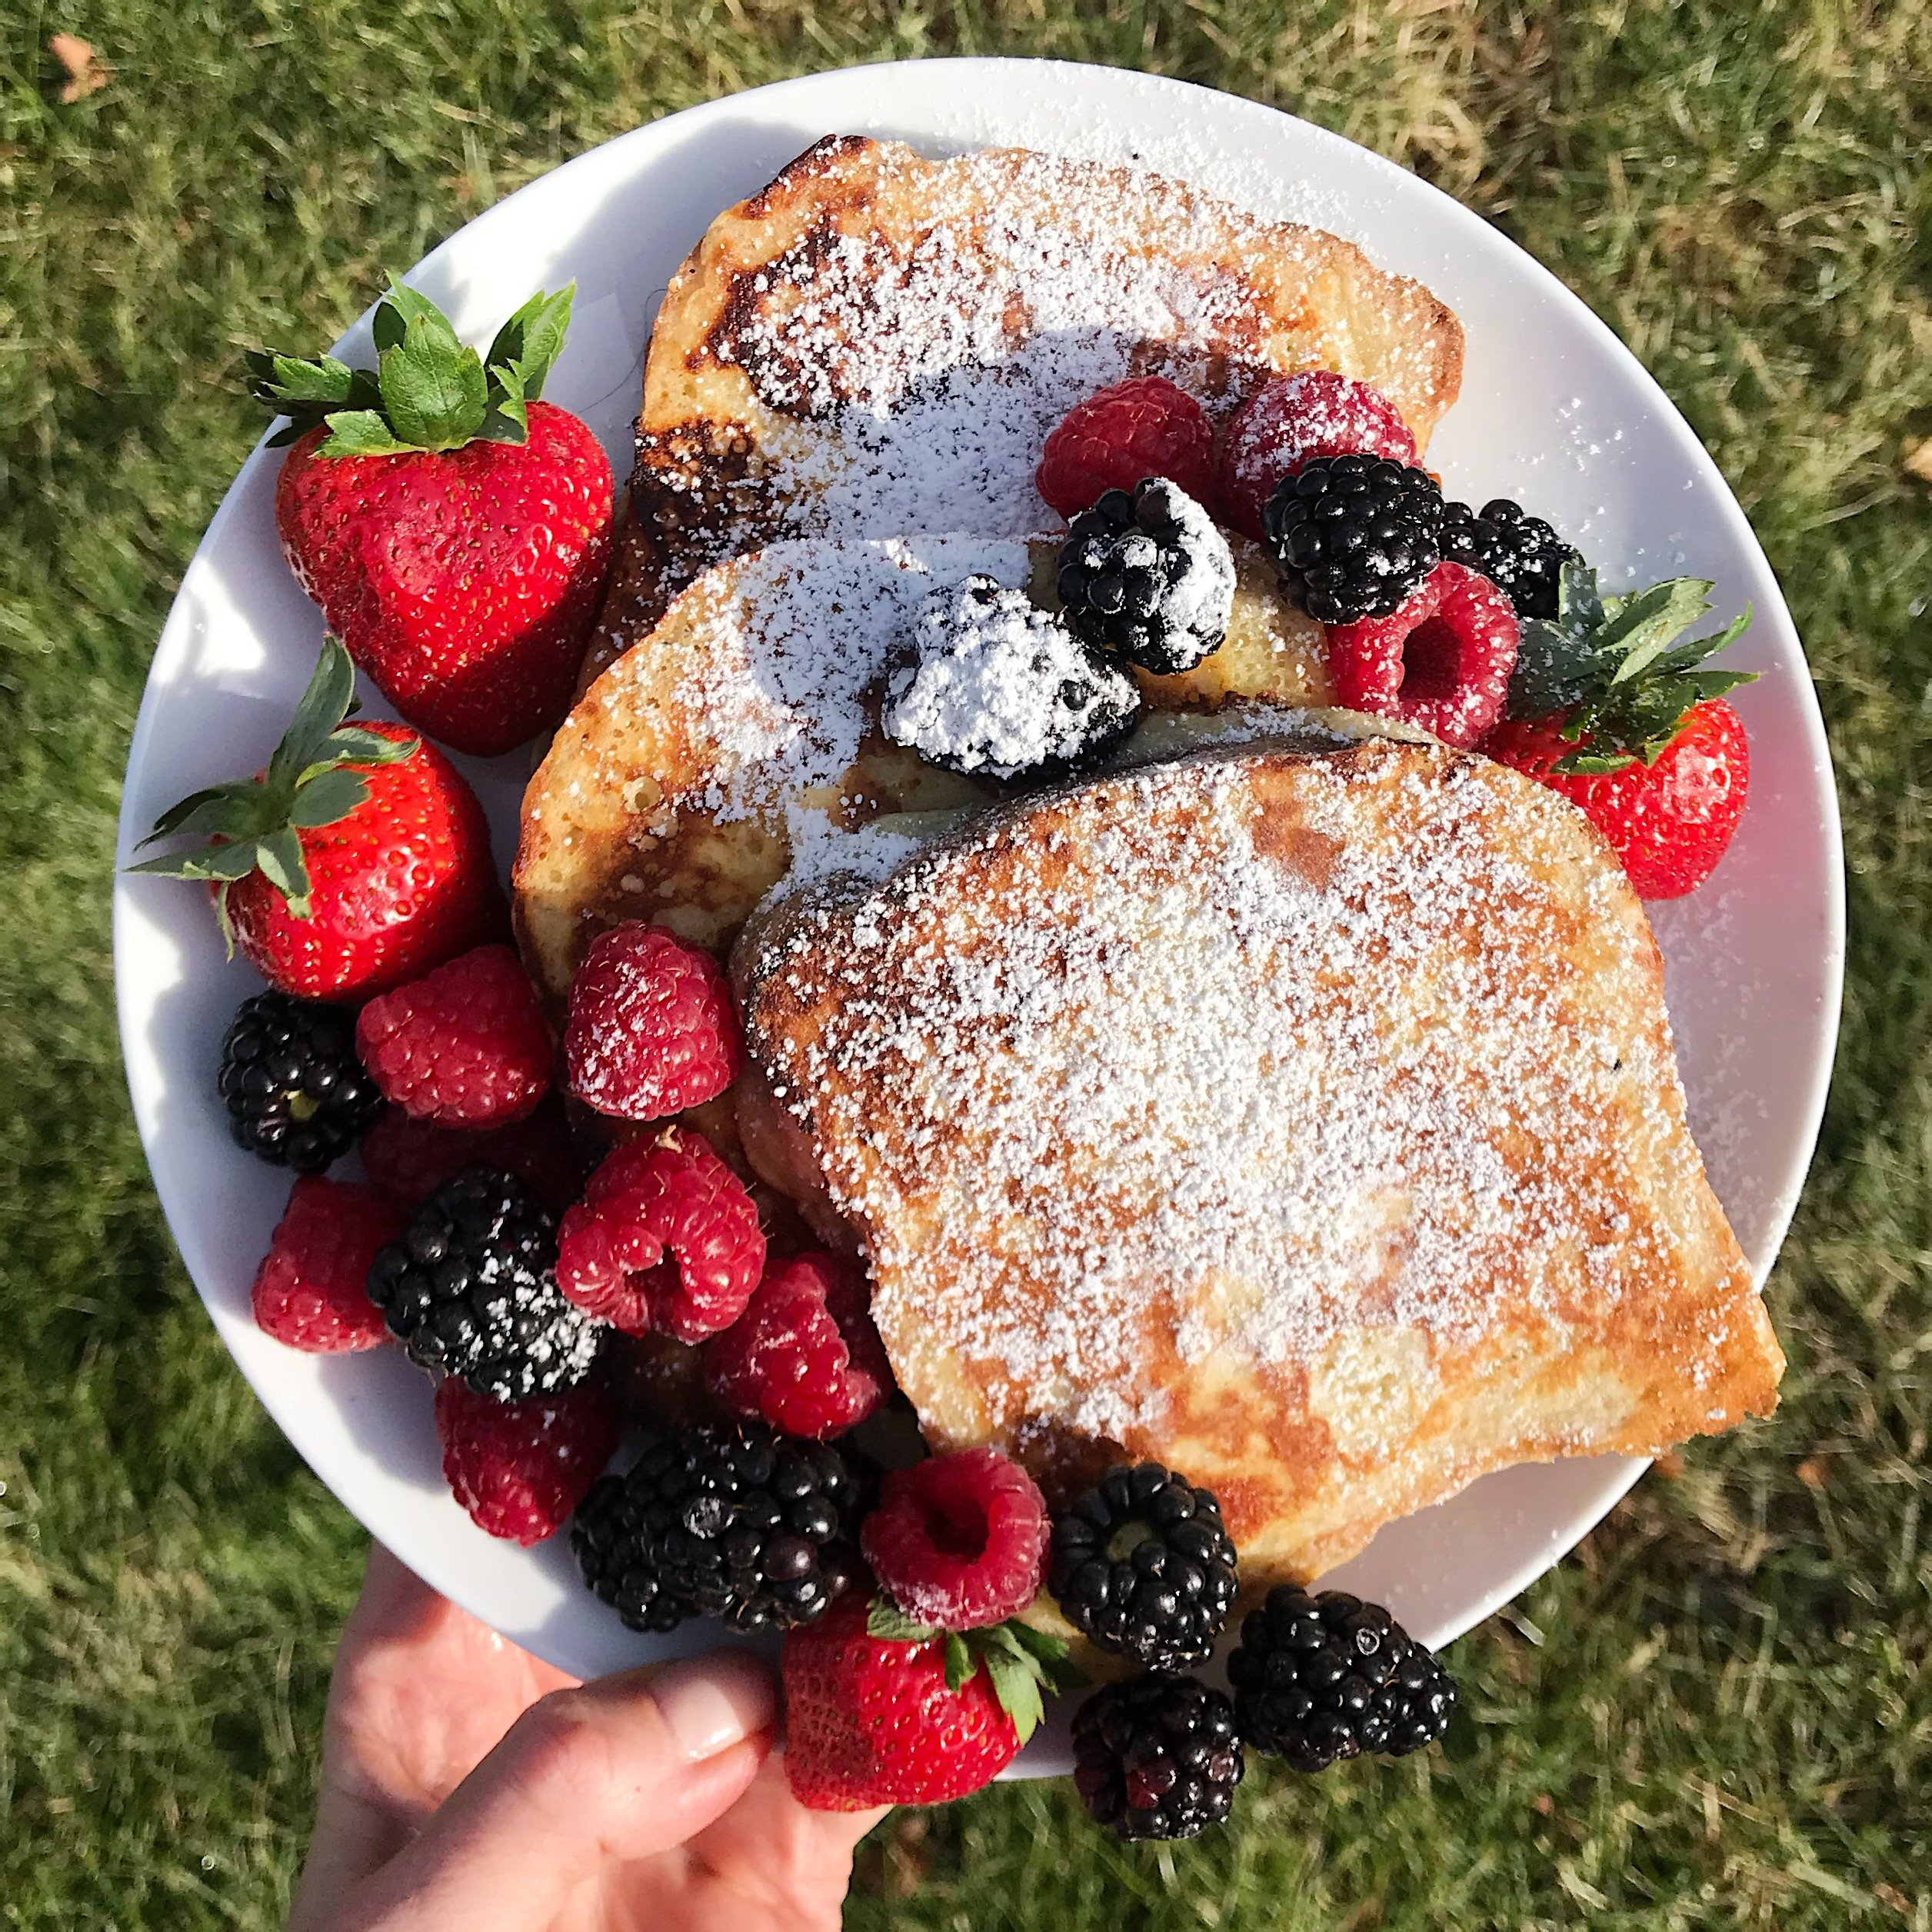 easy gluten free french toast #glutenfreerecipes www.healthygffamily.com